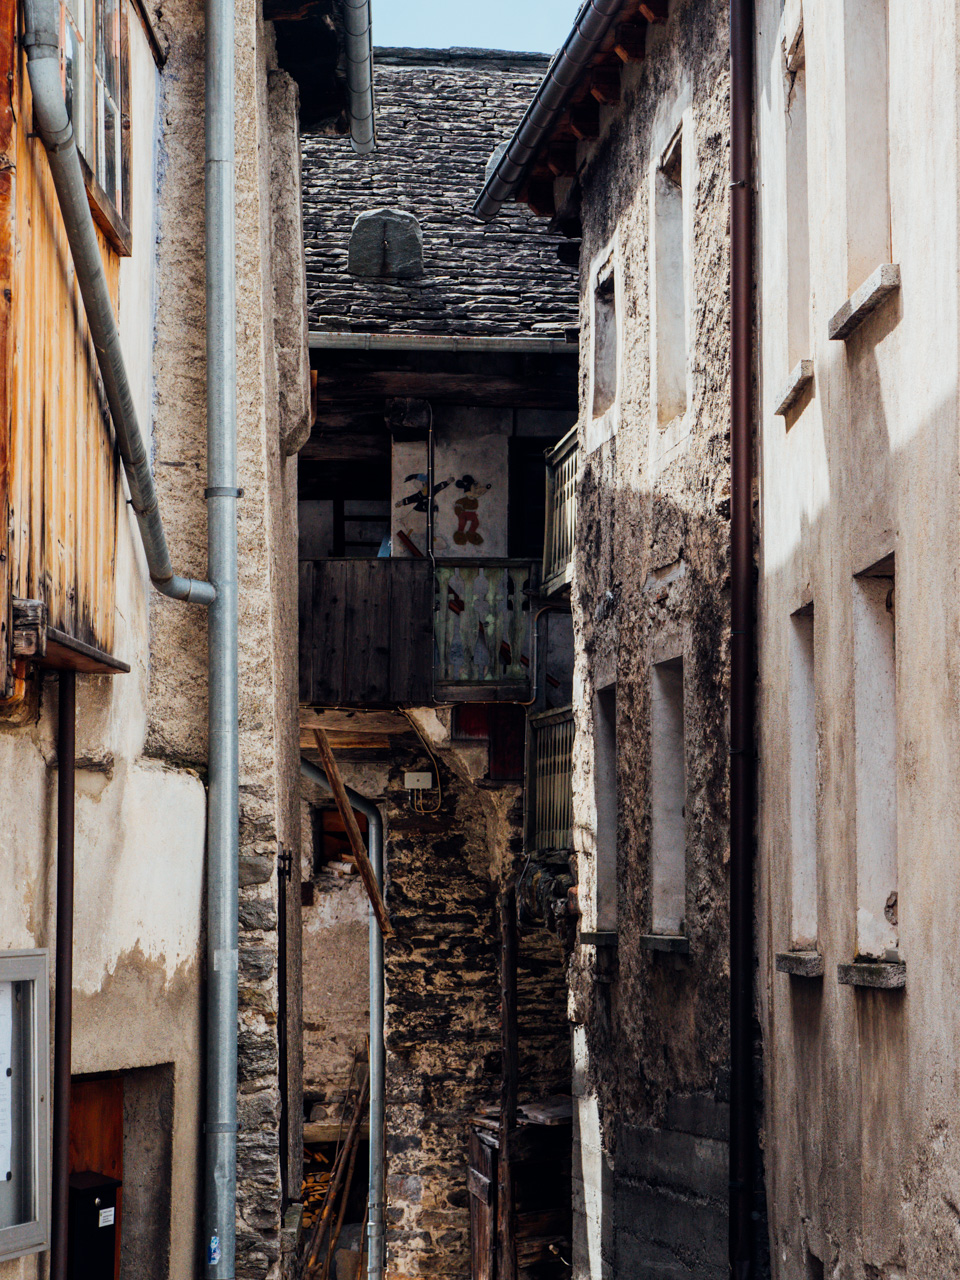 Fascinated with this tight alley. title=Fascinated with this tight alley.